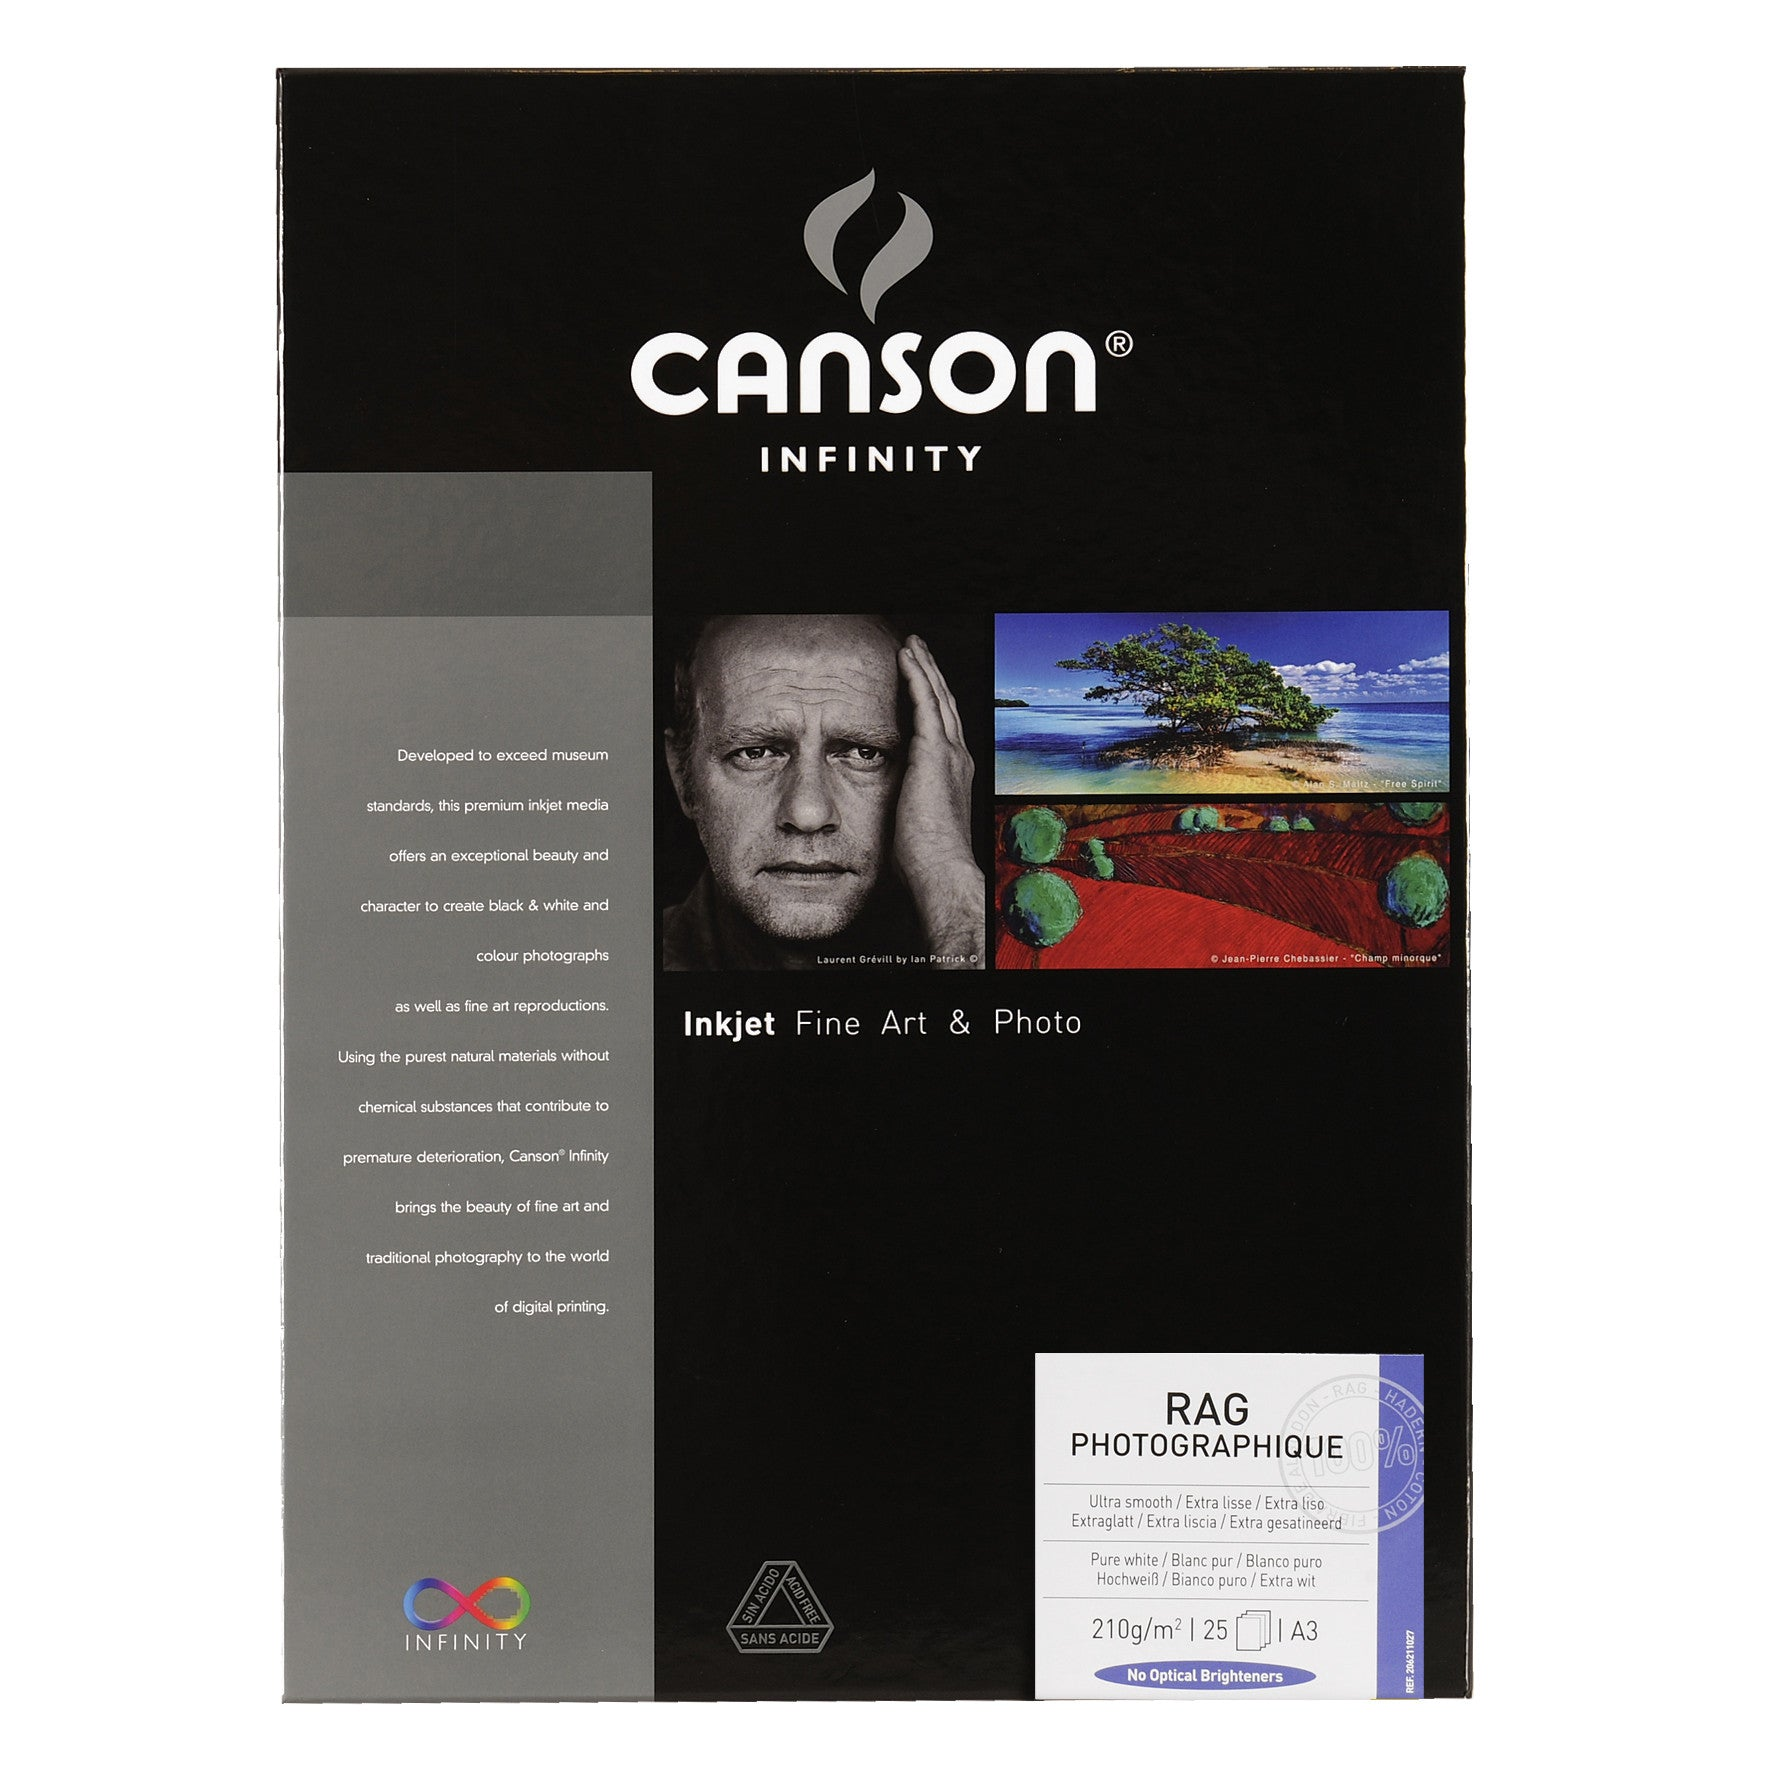 Canson Infinity Rag Photographique - 210gsm - A3 (25 sheets)